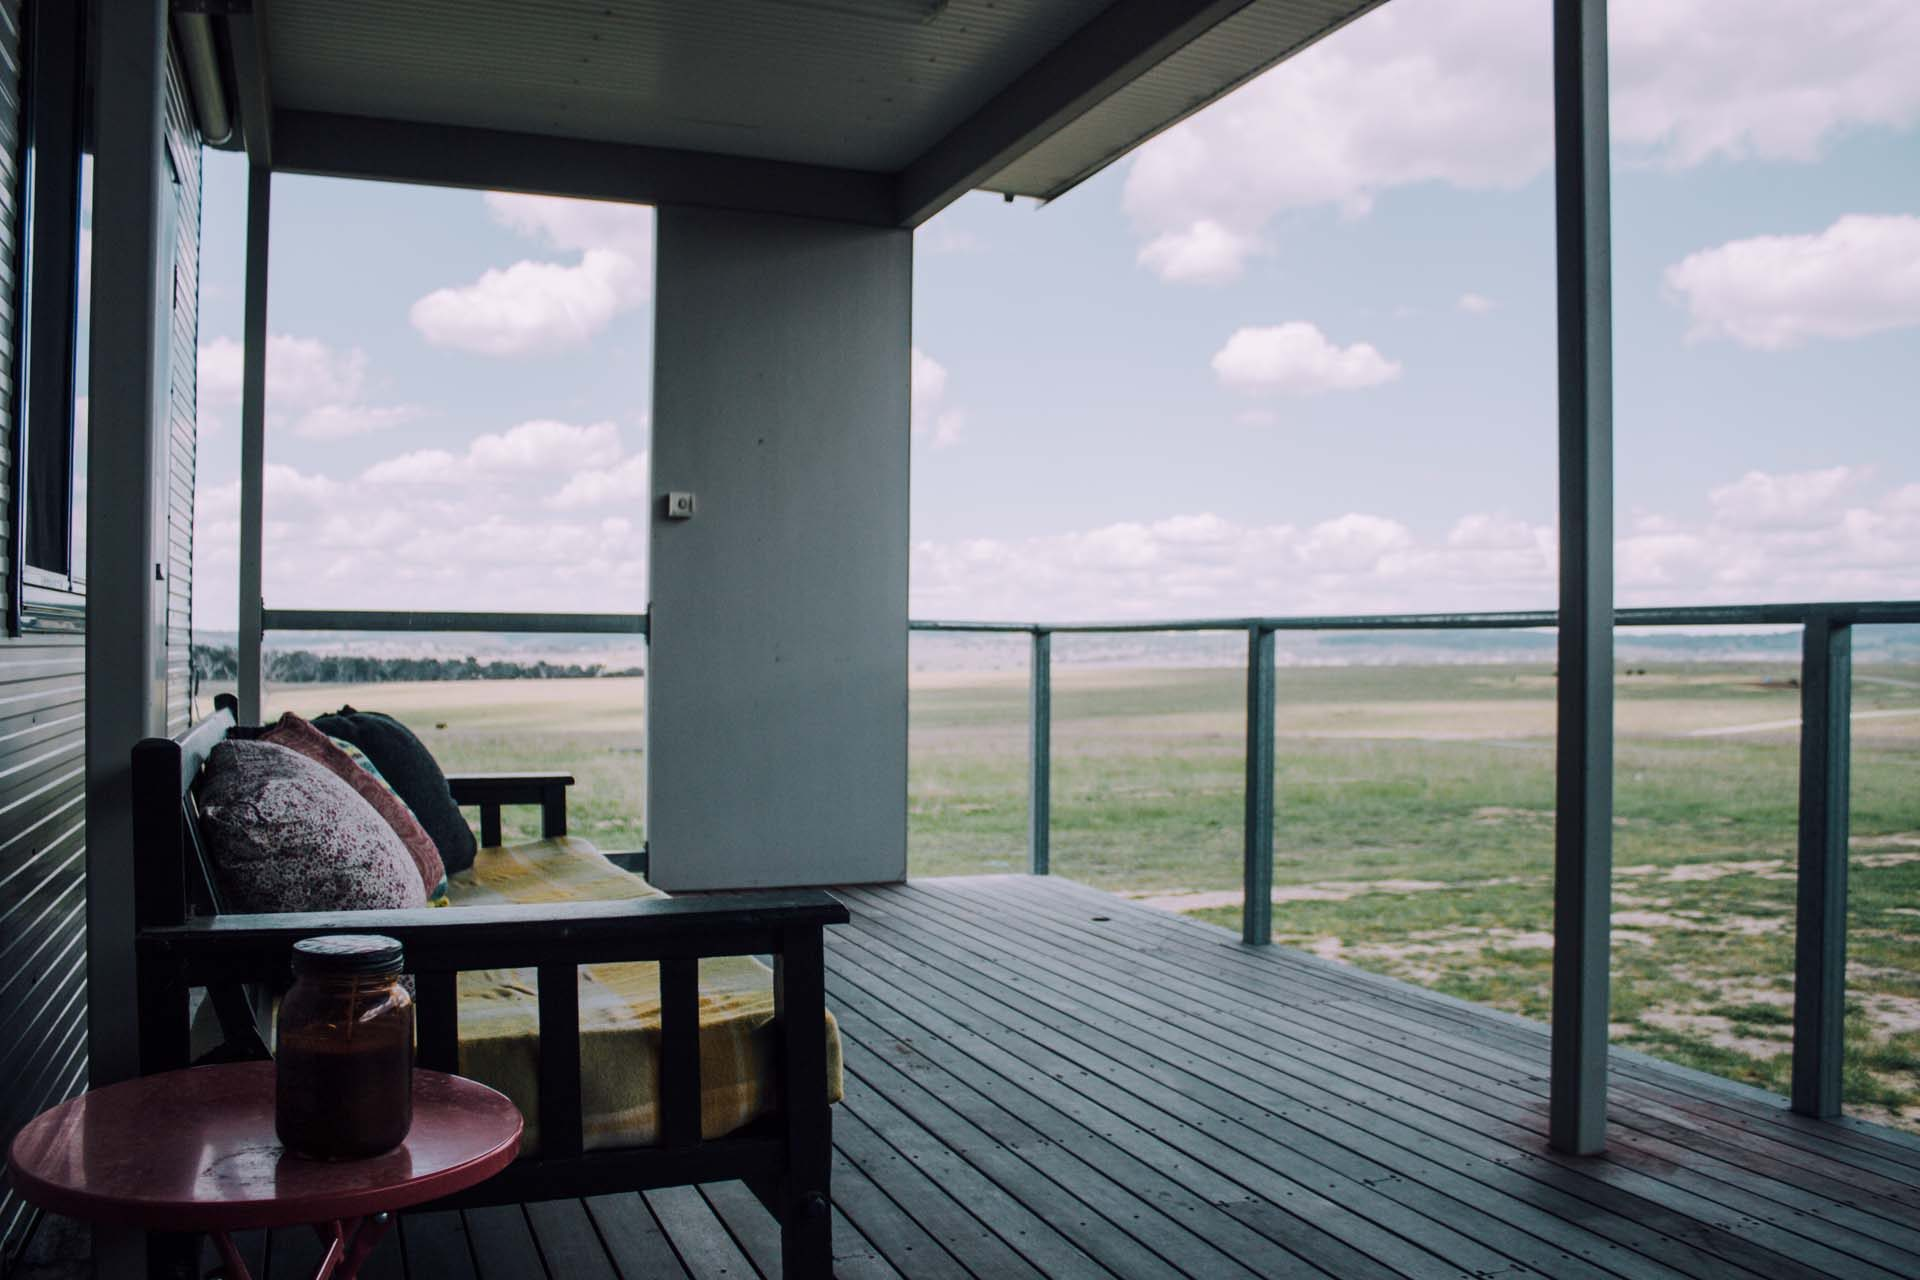 The verandah on the farmstay property at Willow View Pastoral